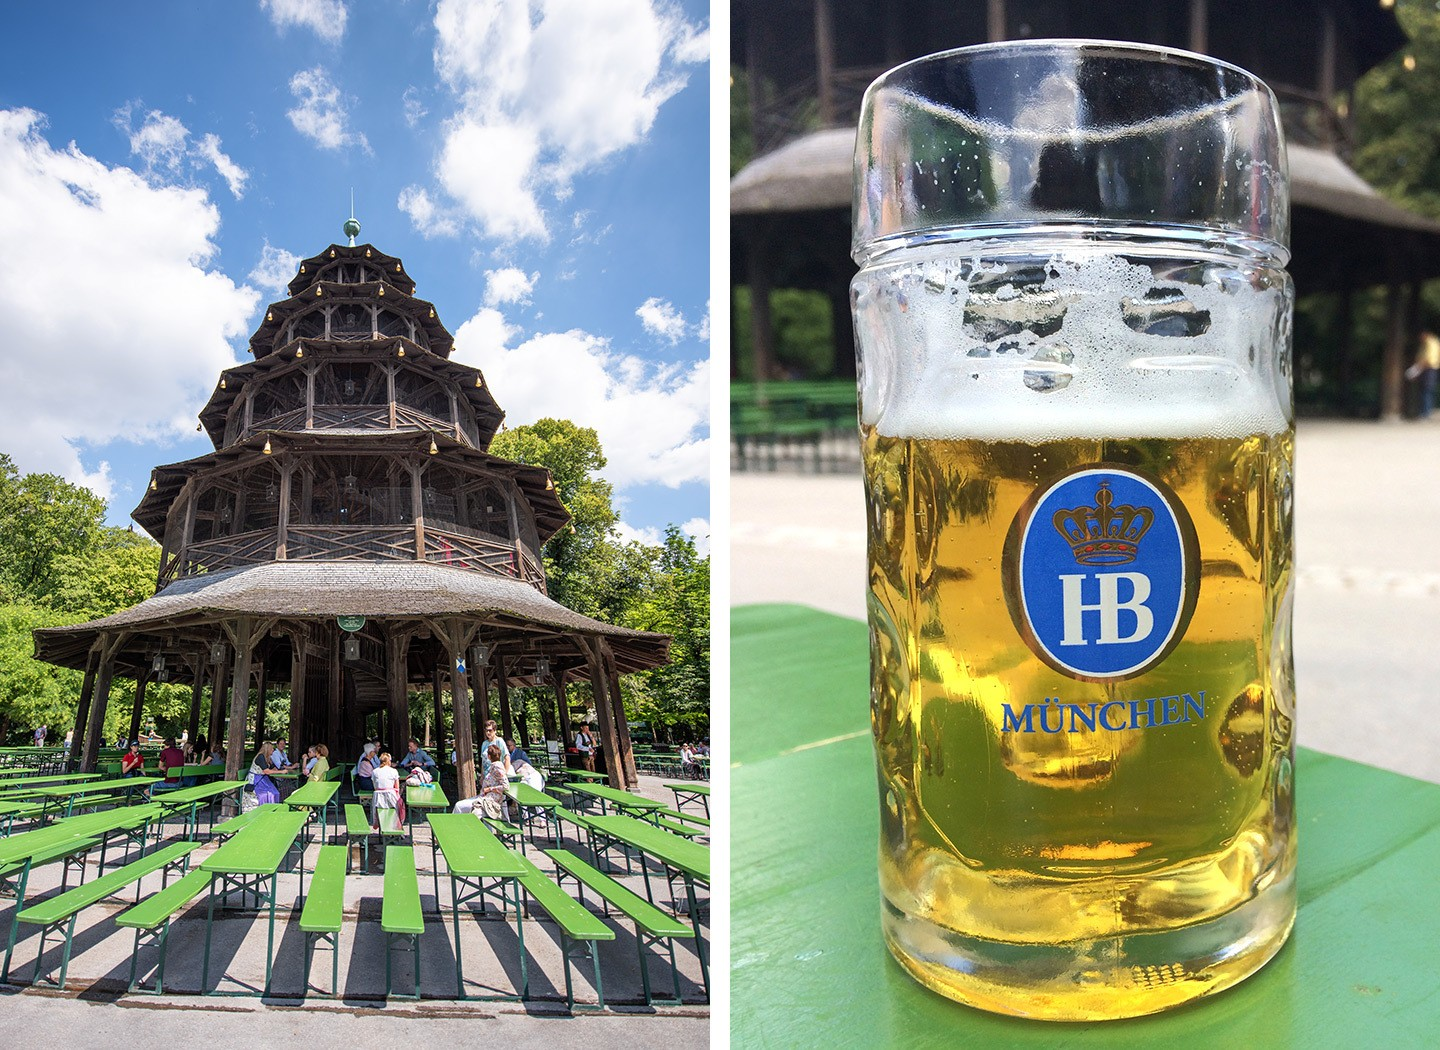 The Chinesischer Turm beer garden in Munich